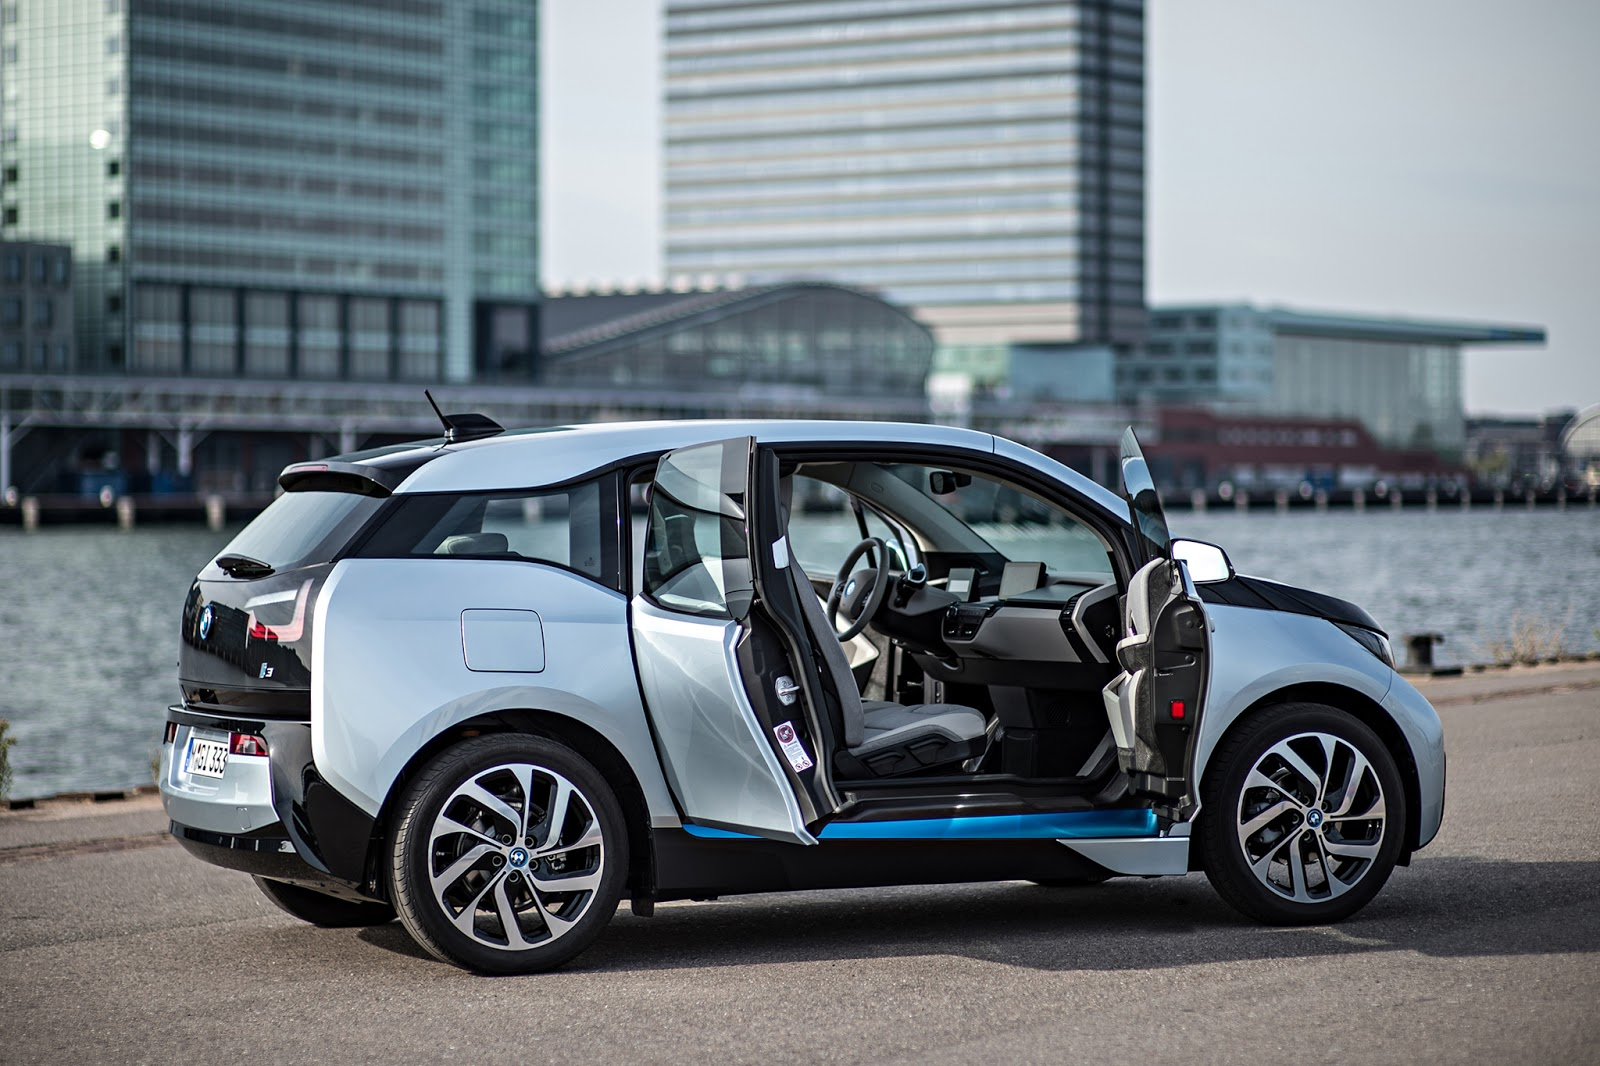 BMW i3s The Drive to Net Zero Energy BMW Tesla Doors done